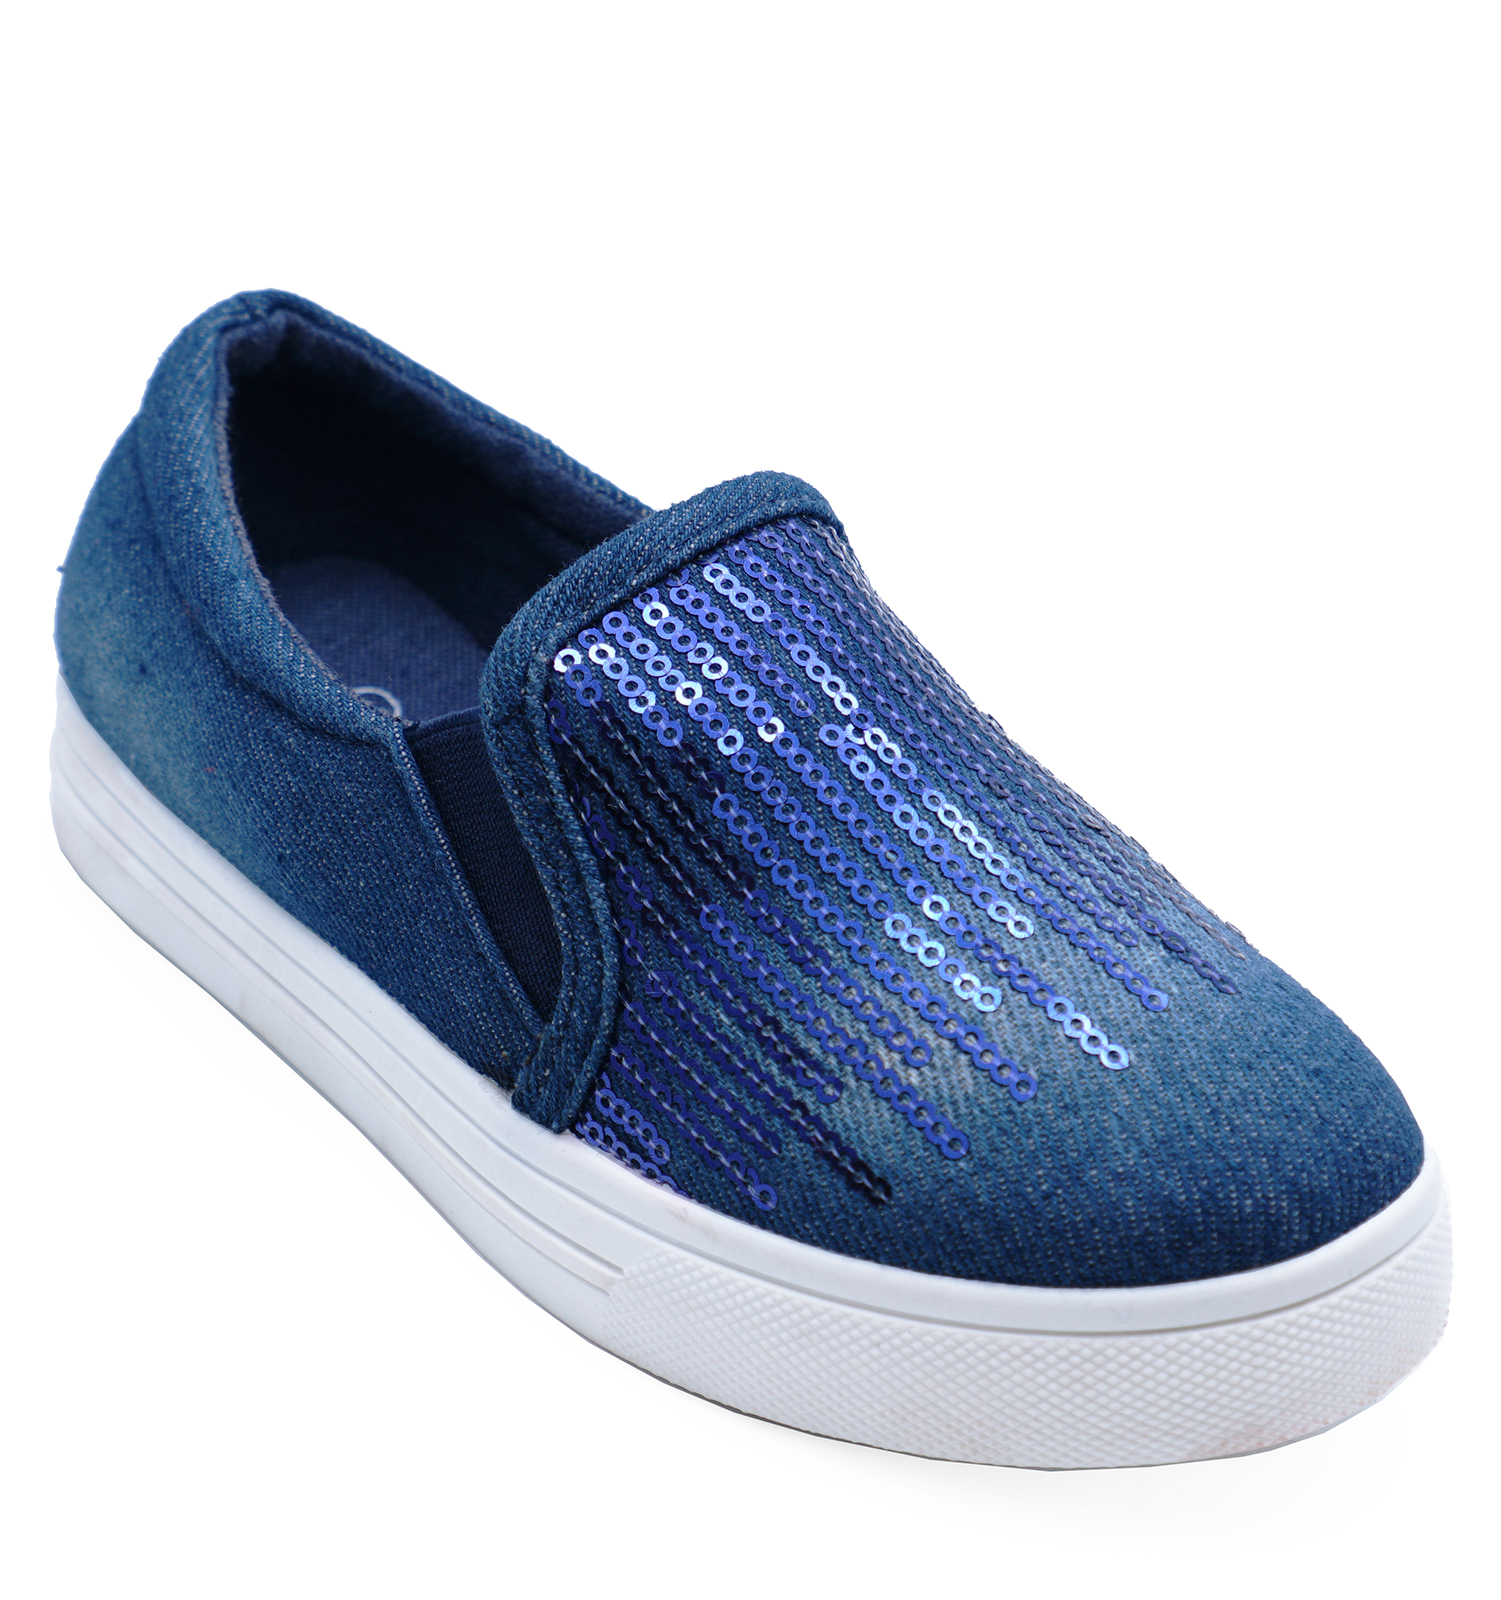 CHILDRENS-KIDS-GIRLS-DENIM-SLIP-ON-CASUAL-SHOES-TRAINERS-DANCE-PUMPS-SIZES-8-1 thumbnail 5